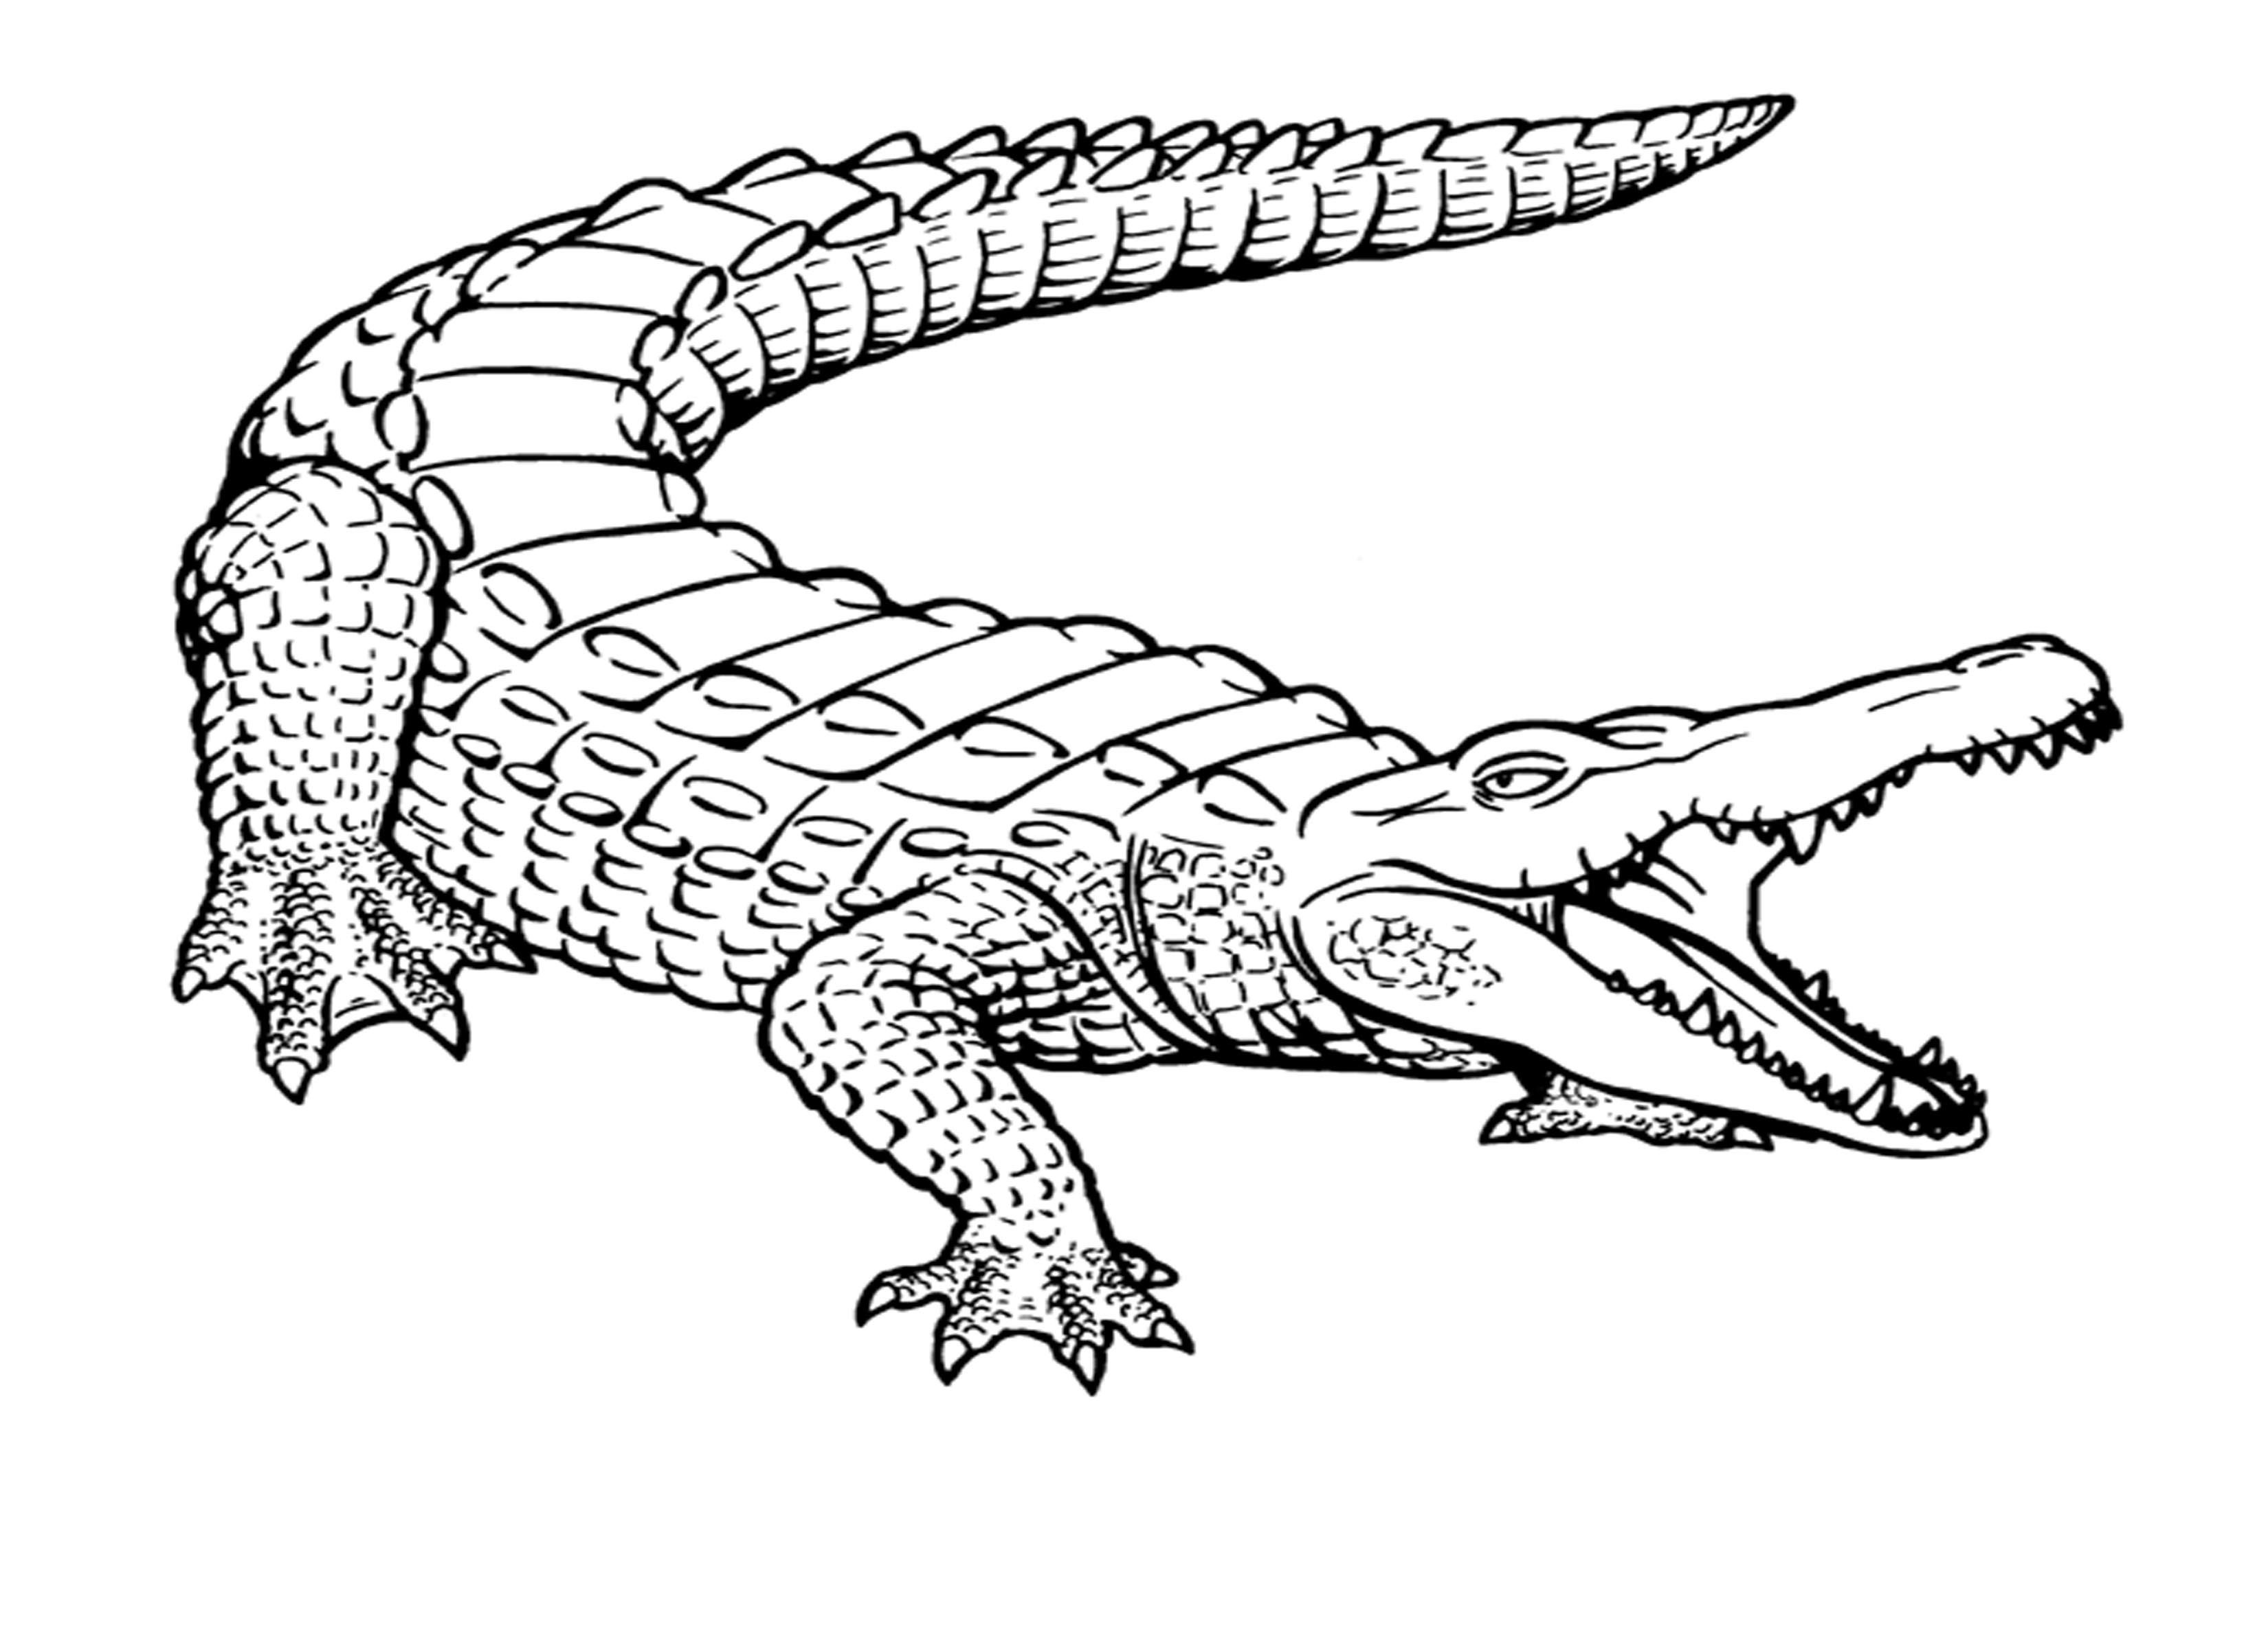 Free Printable Crocodile Coloring Pages For Kids Coloring Pages Coloring Pages To Print Colorful Drawings